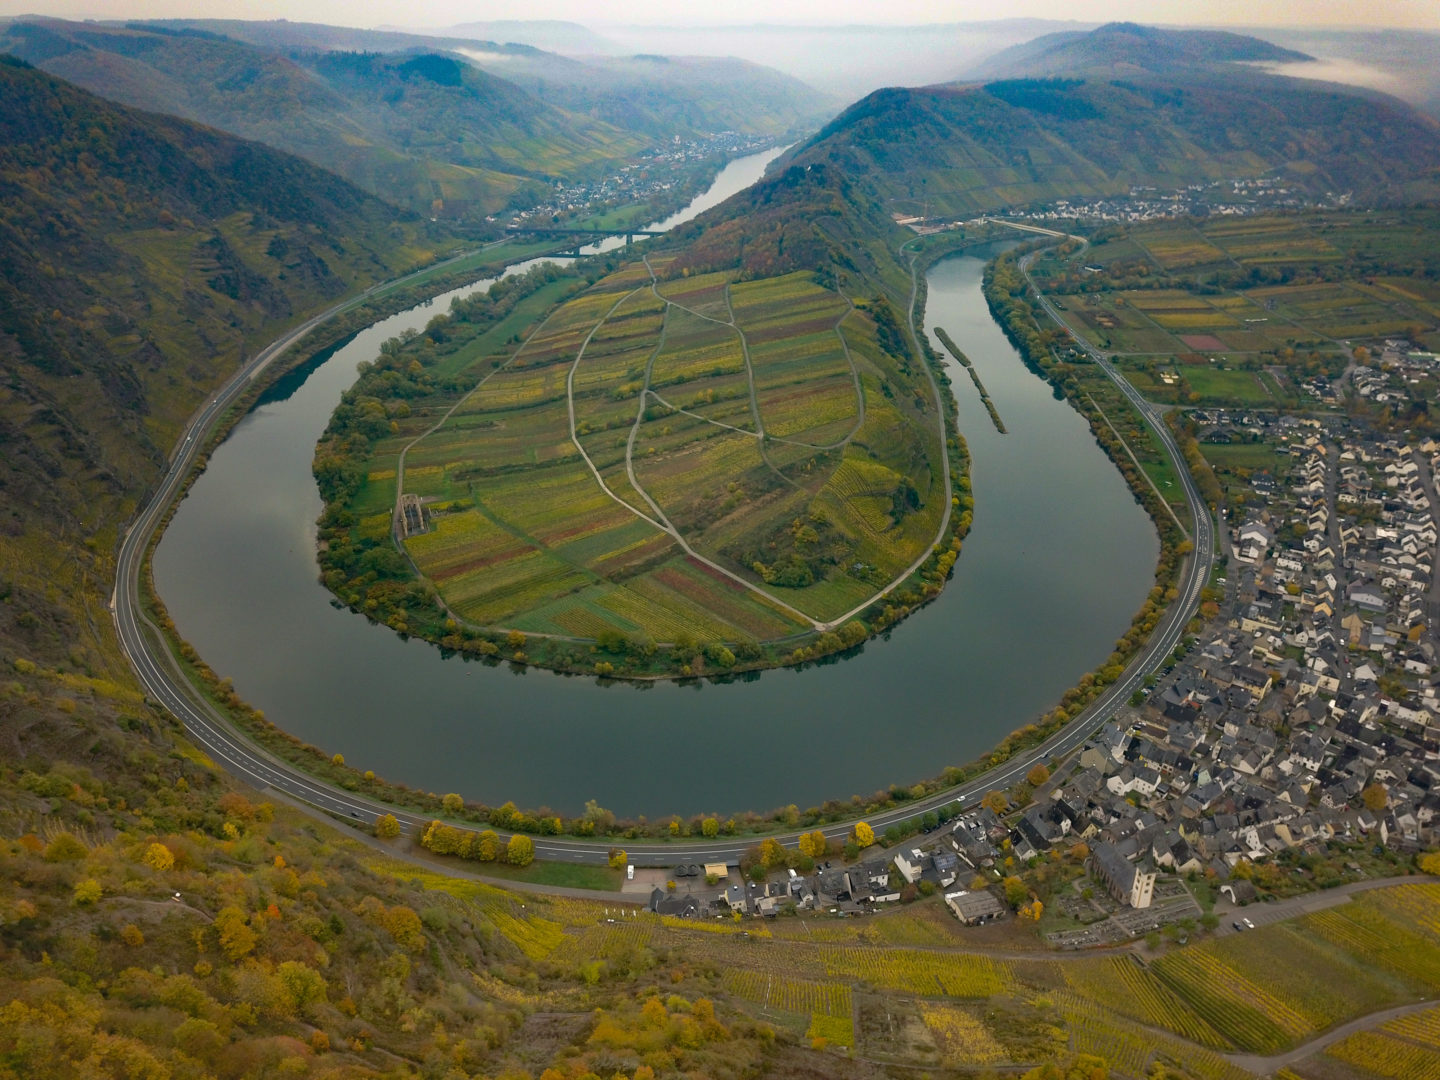 The river Mosel makes an impressive hairpin turn near the town of Bremm.